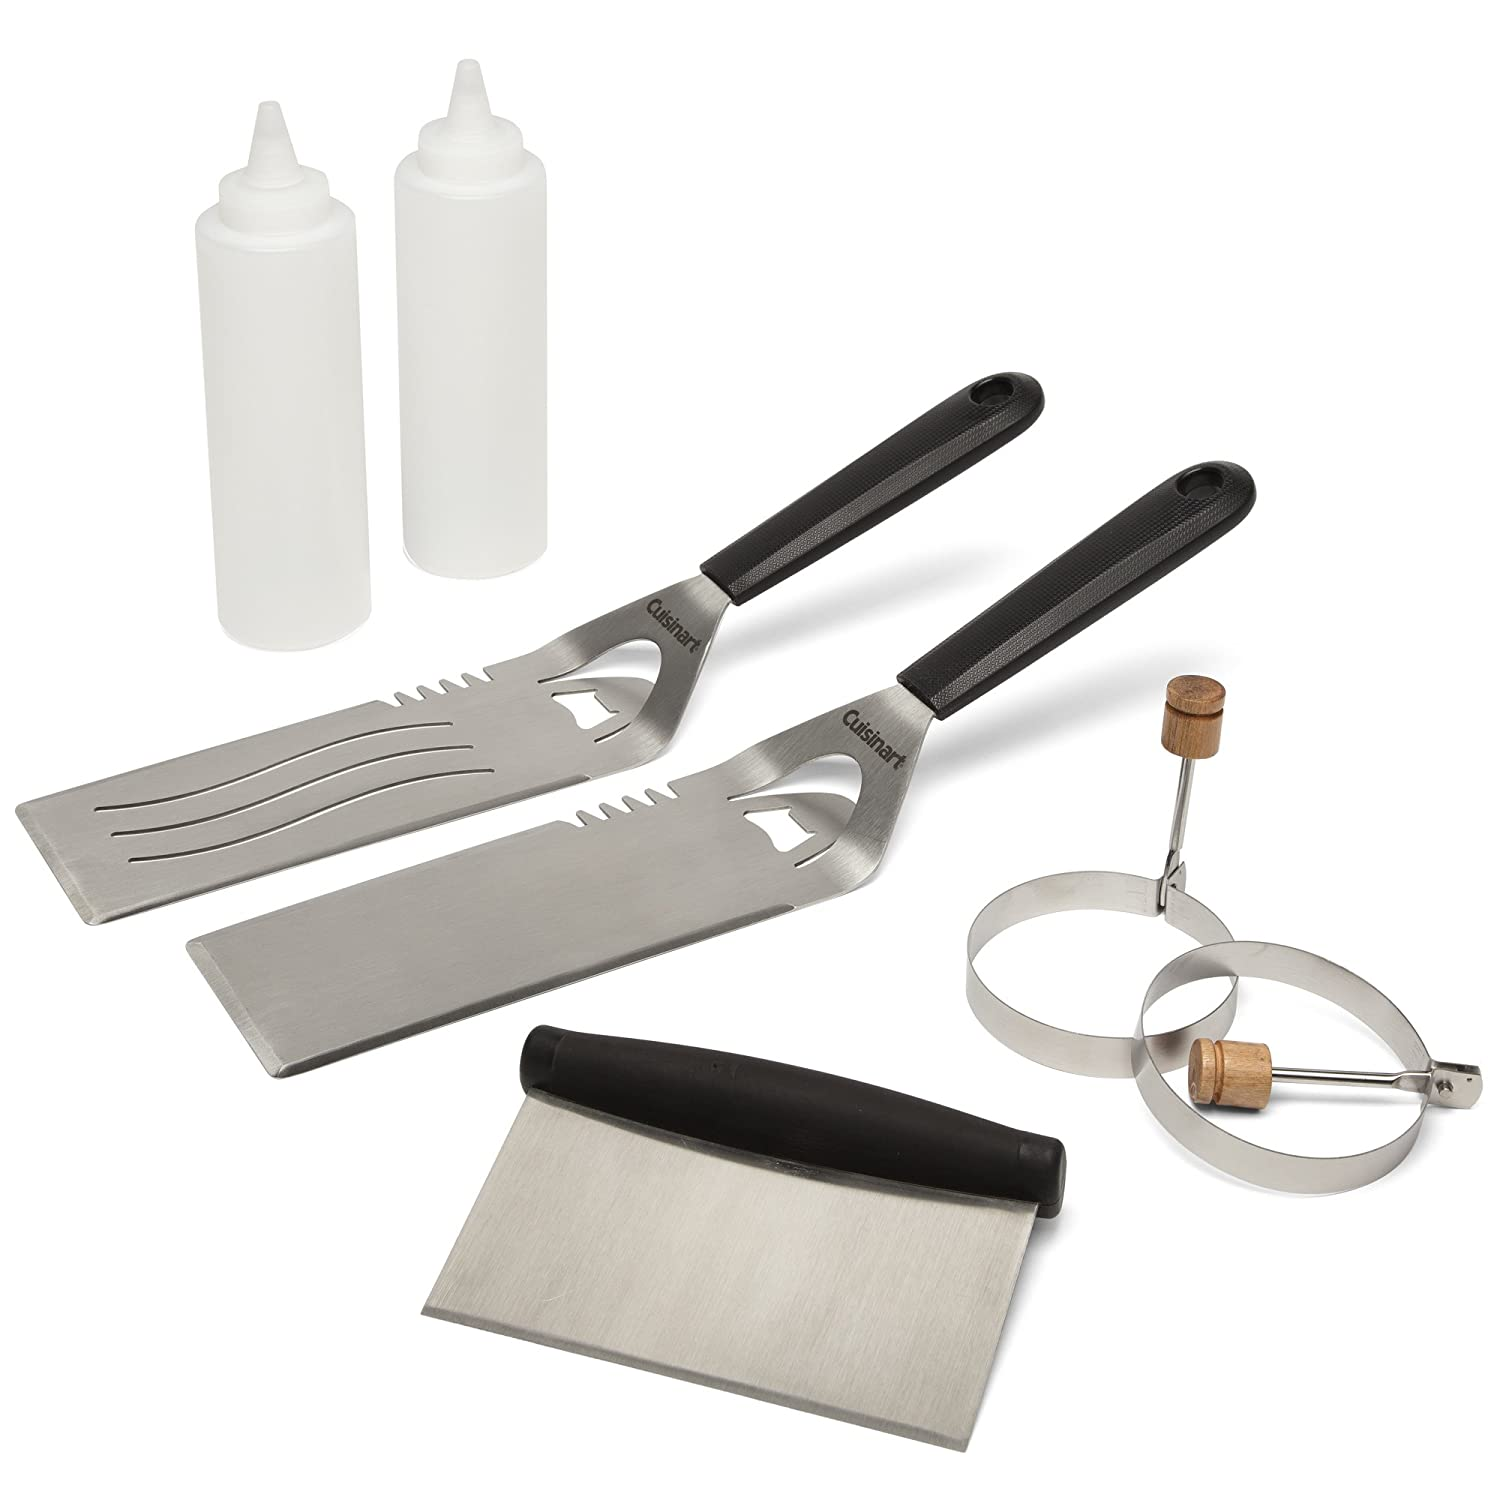 Cuisinart (CGS-507) 7-Piece Griddlin' Kit